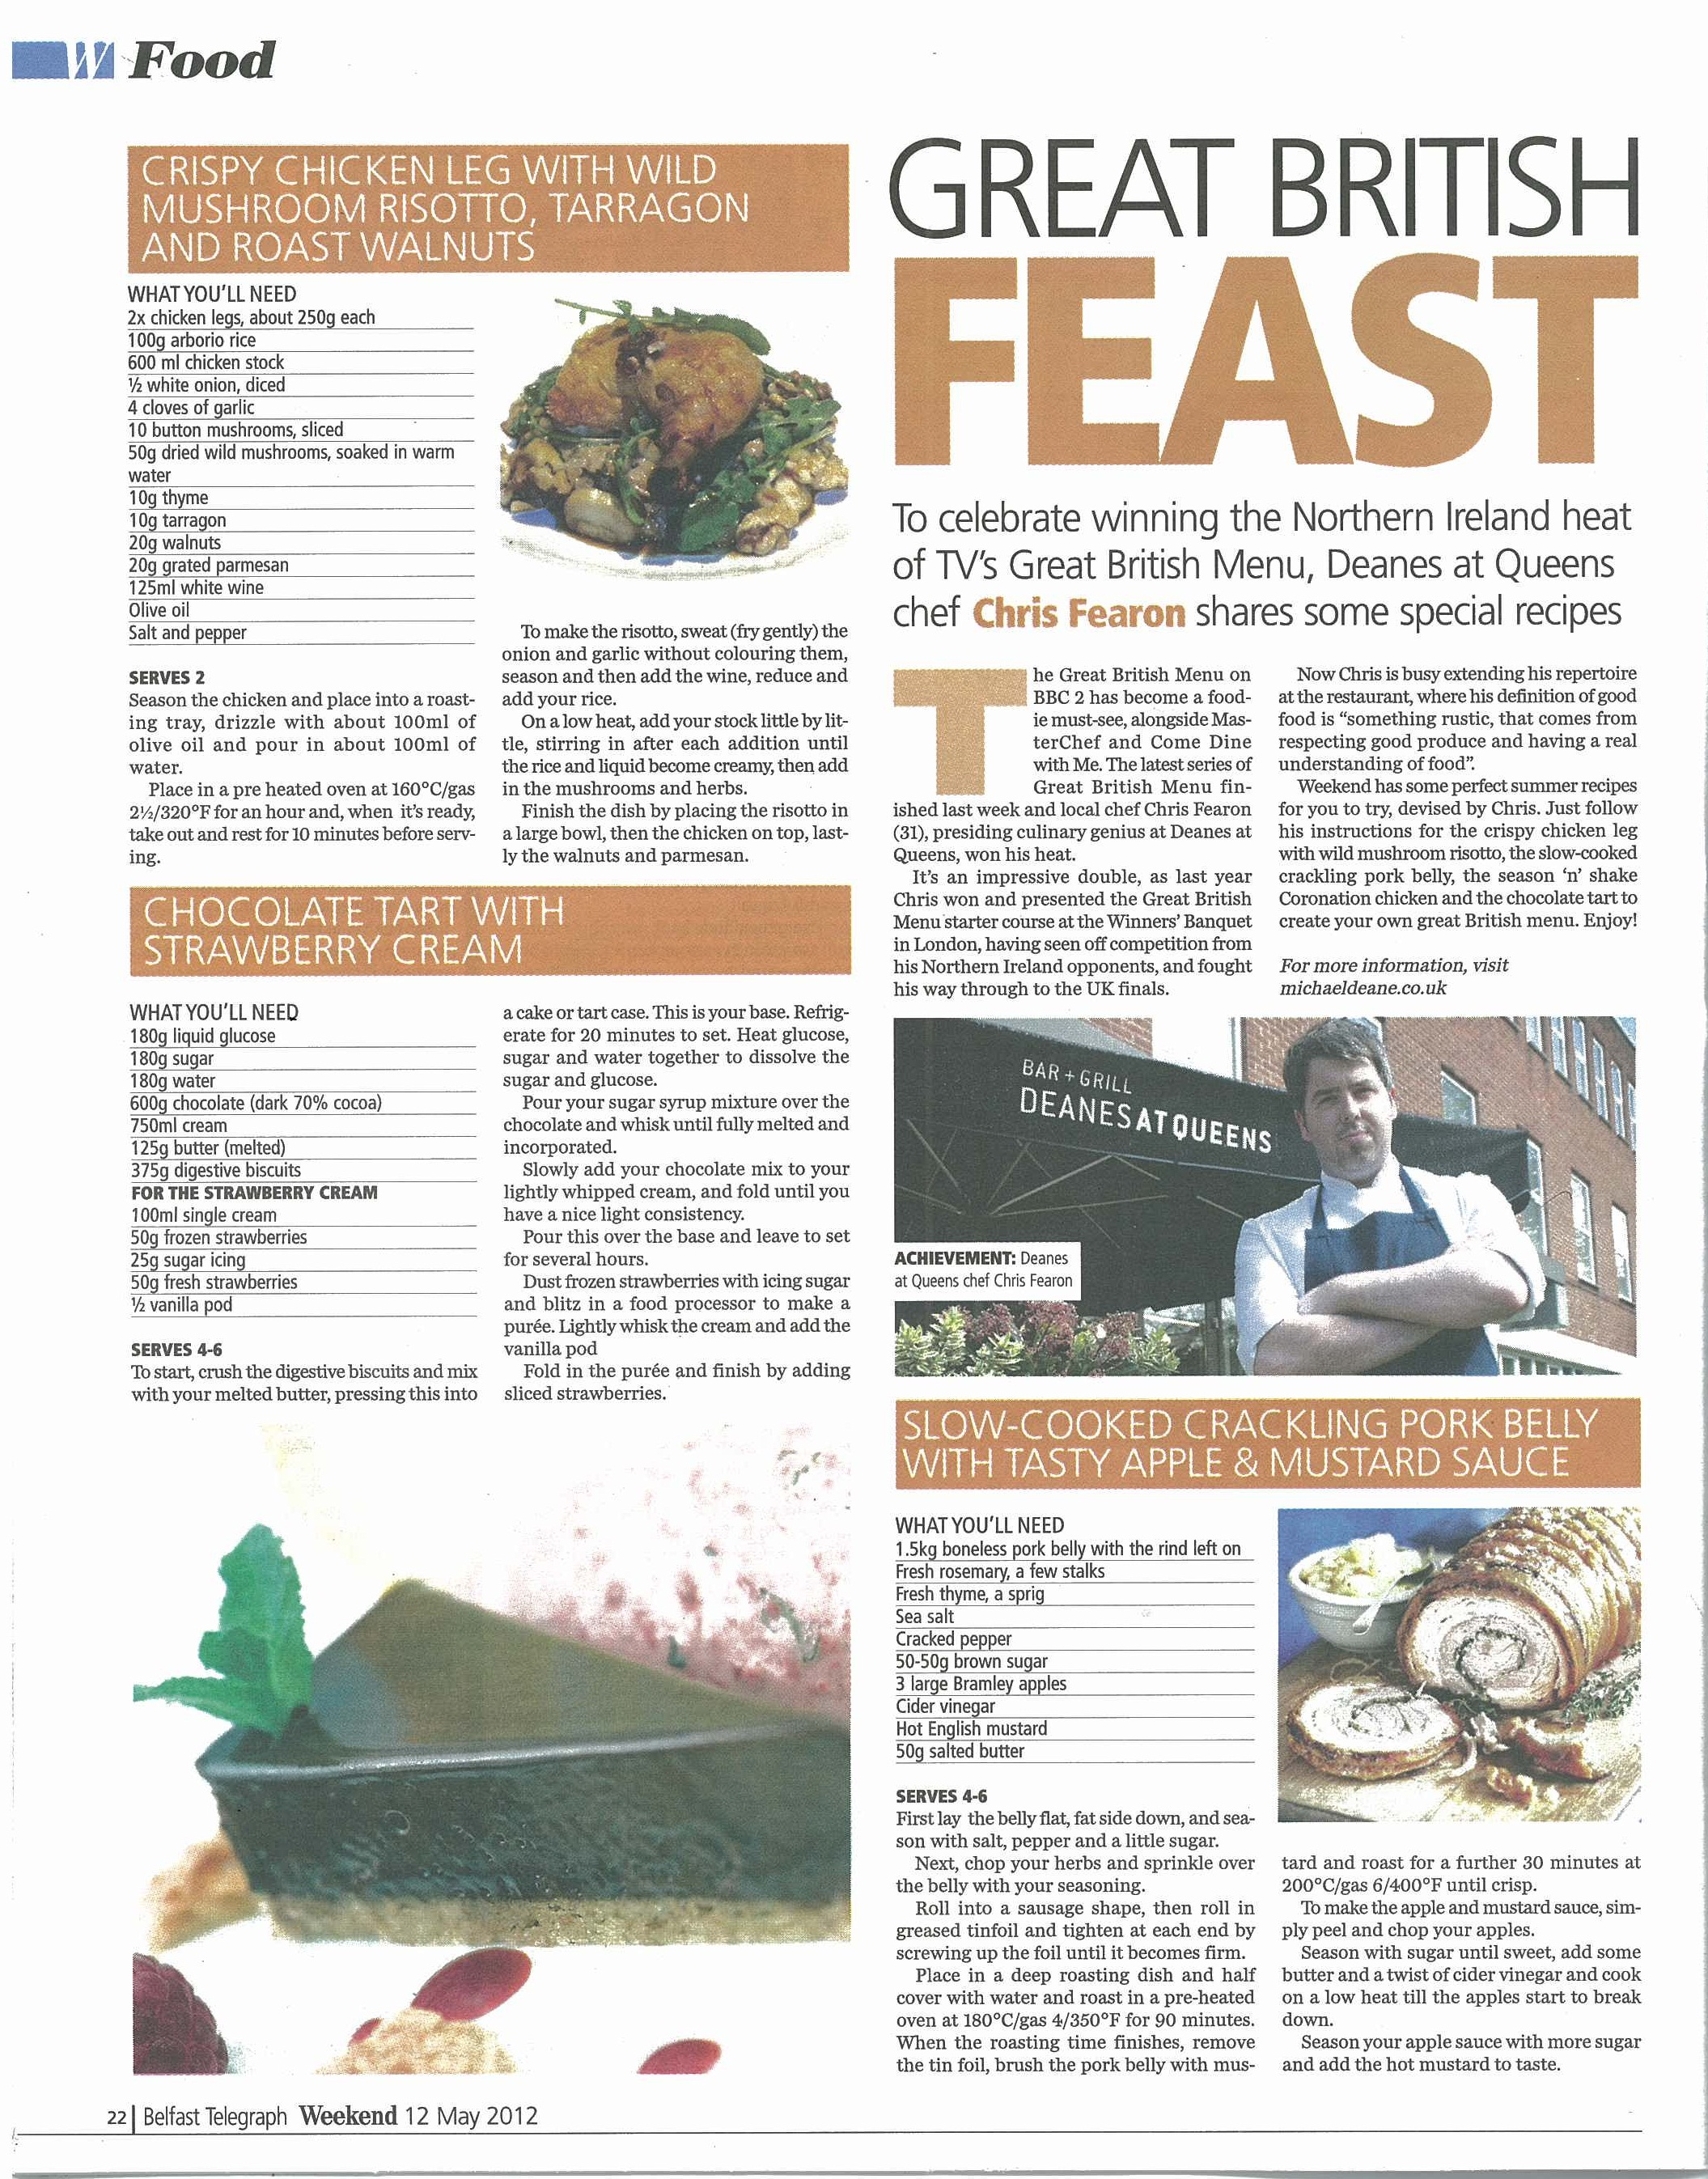 Belfast Telegraph 12 5 12 part 1.jpg